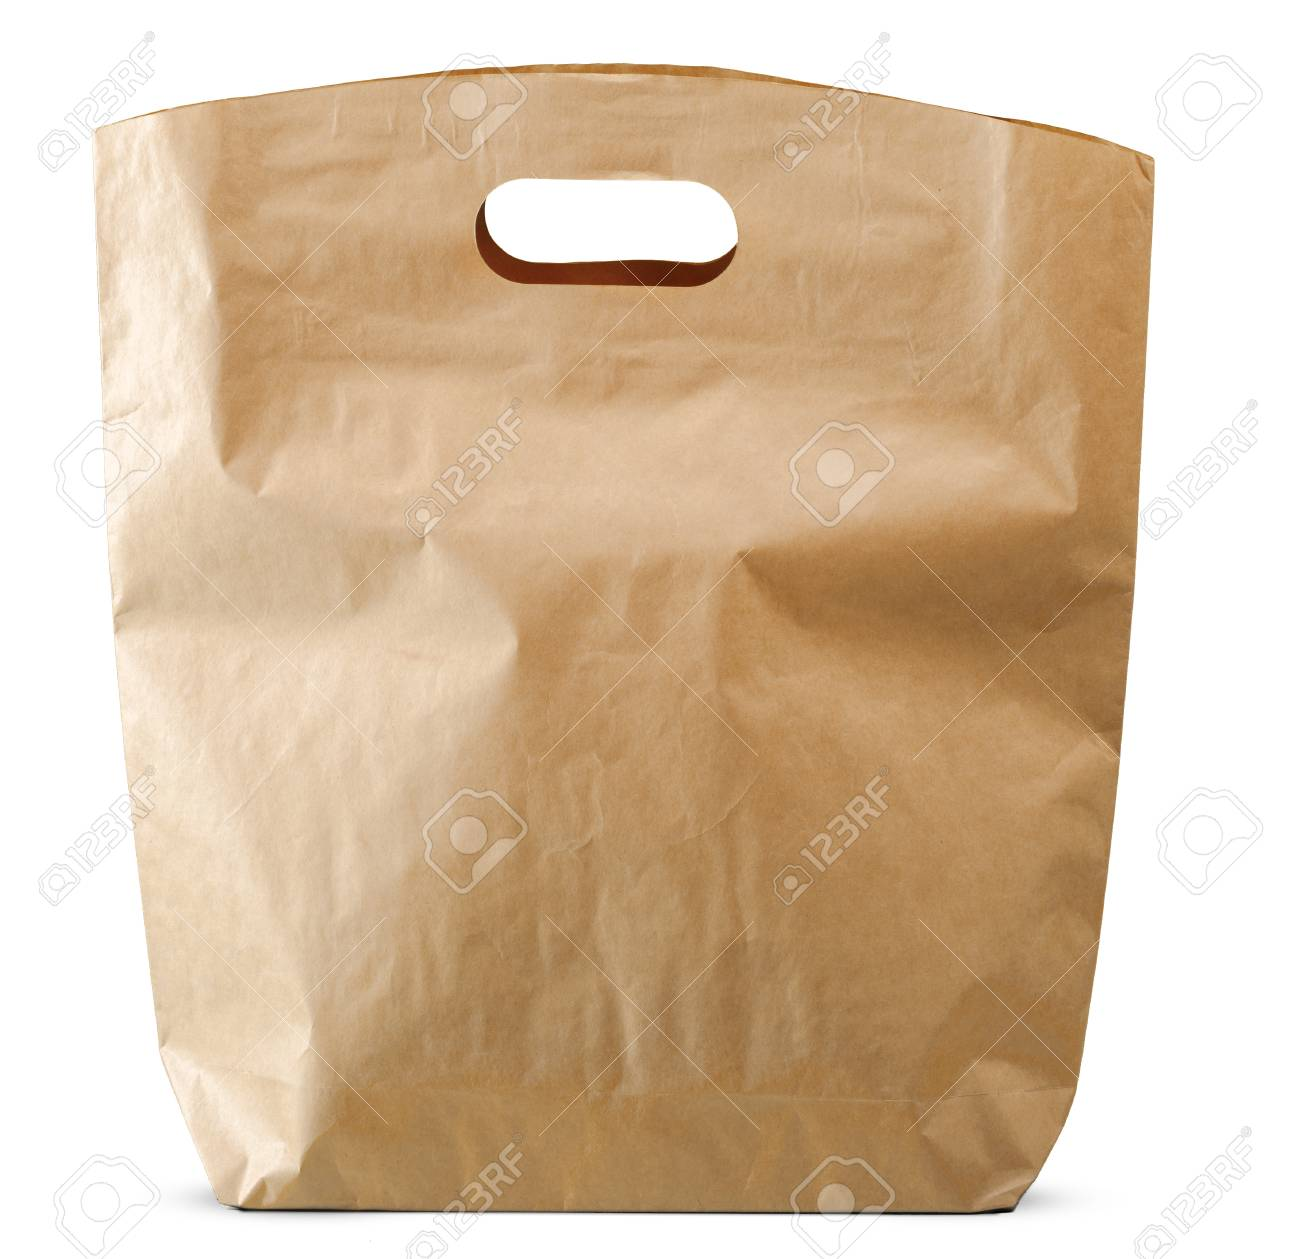 paper bags isolated on white background - 94220419